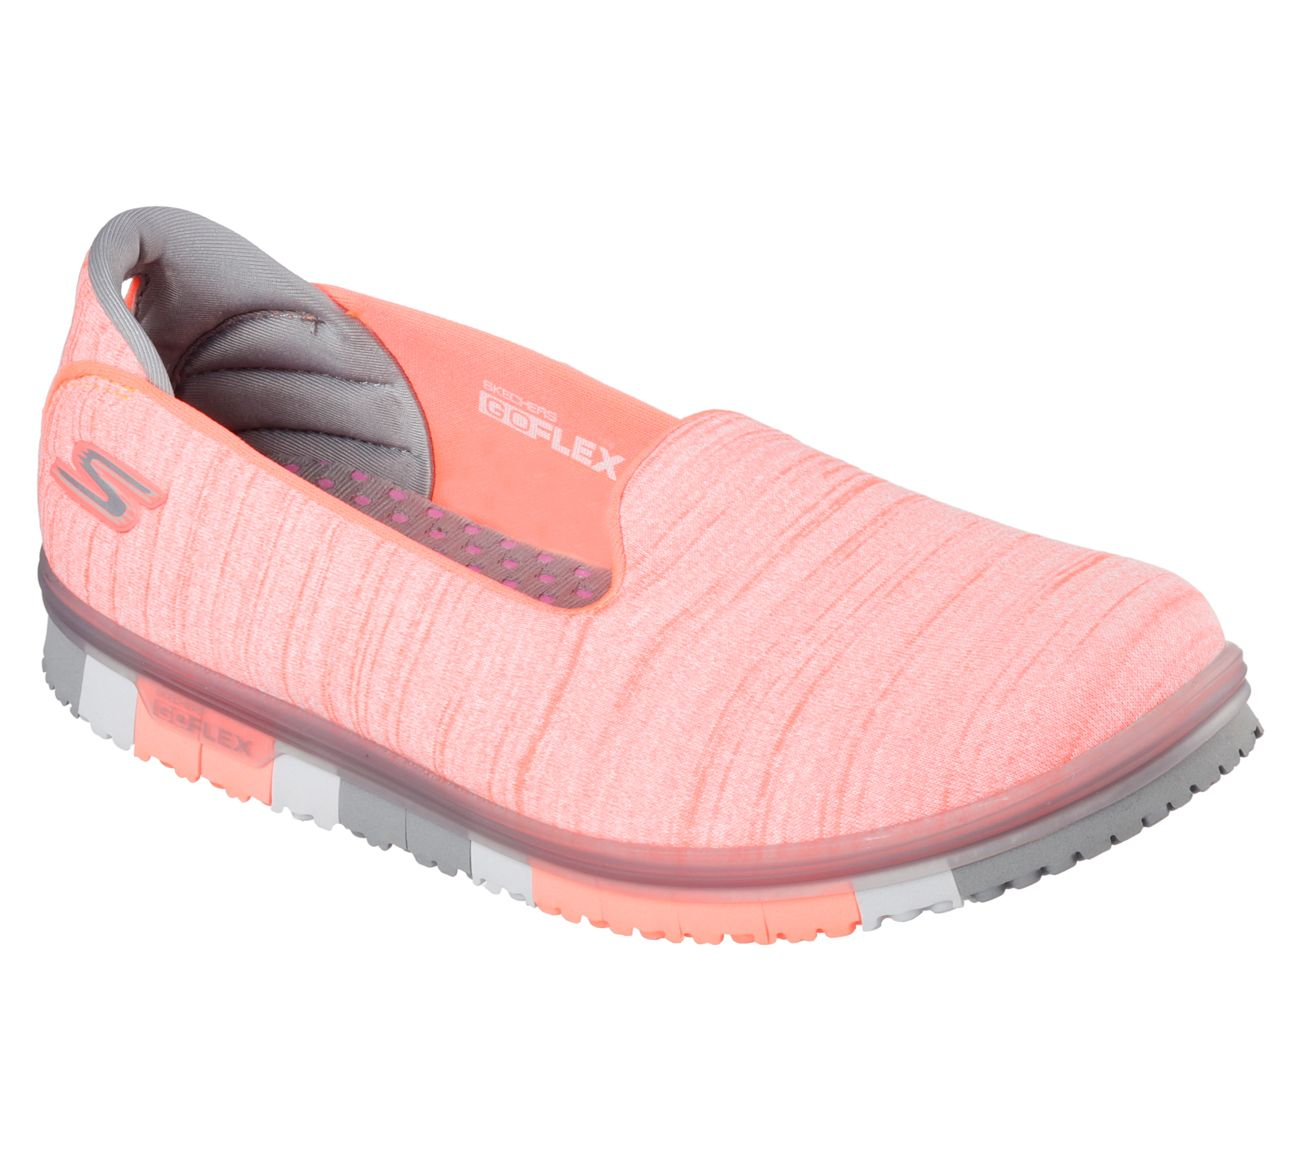 ee147757532e The Skechers GO MINI-FLEX Walk™ is the shoe that moves with you.